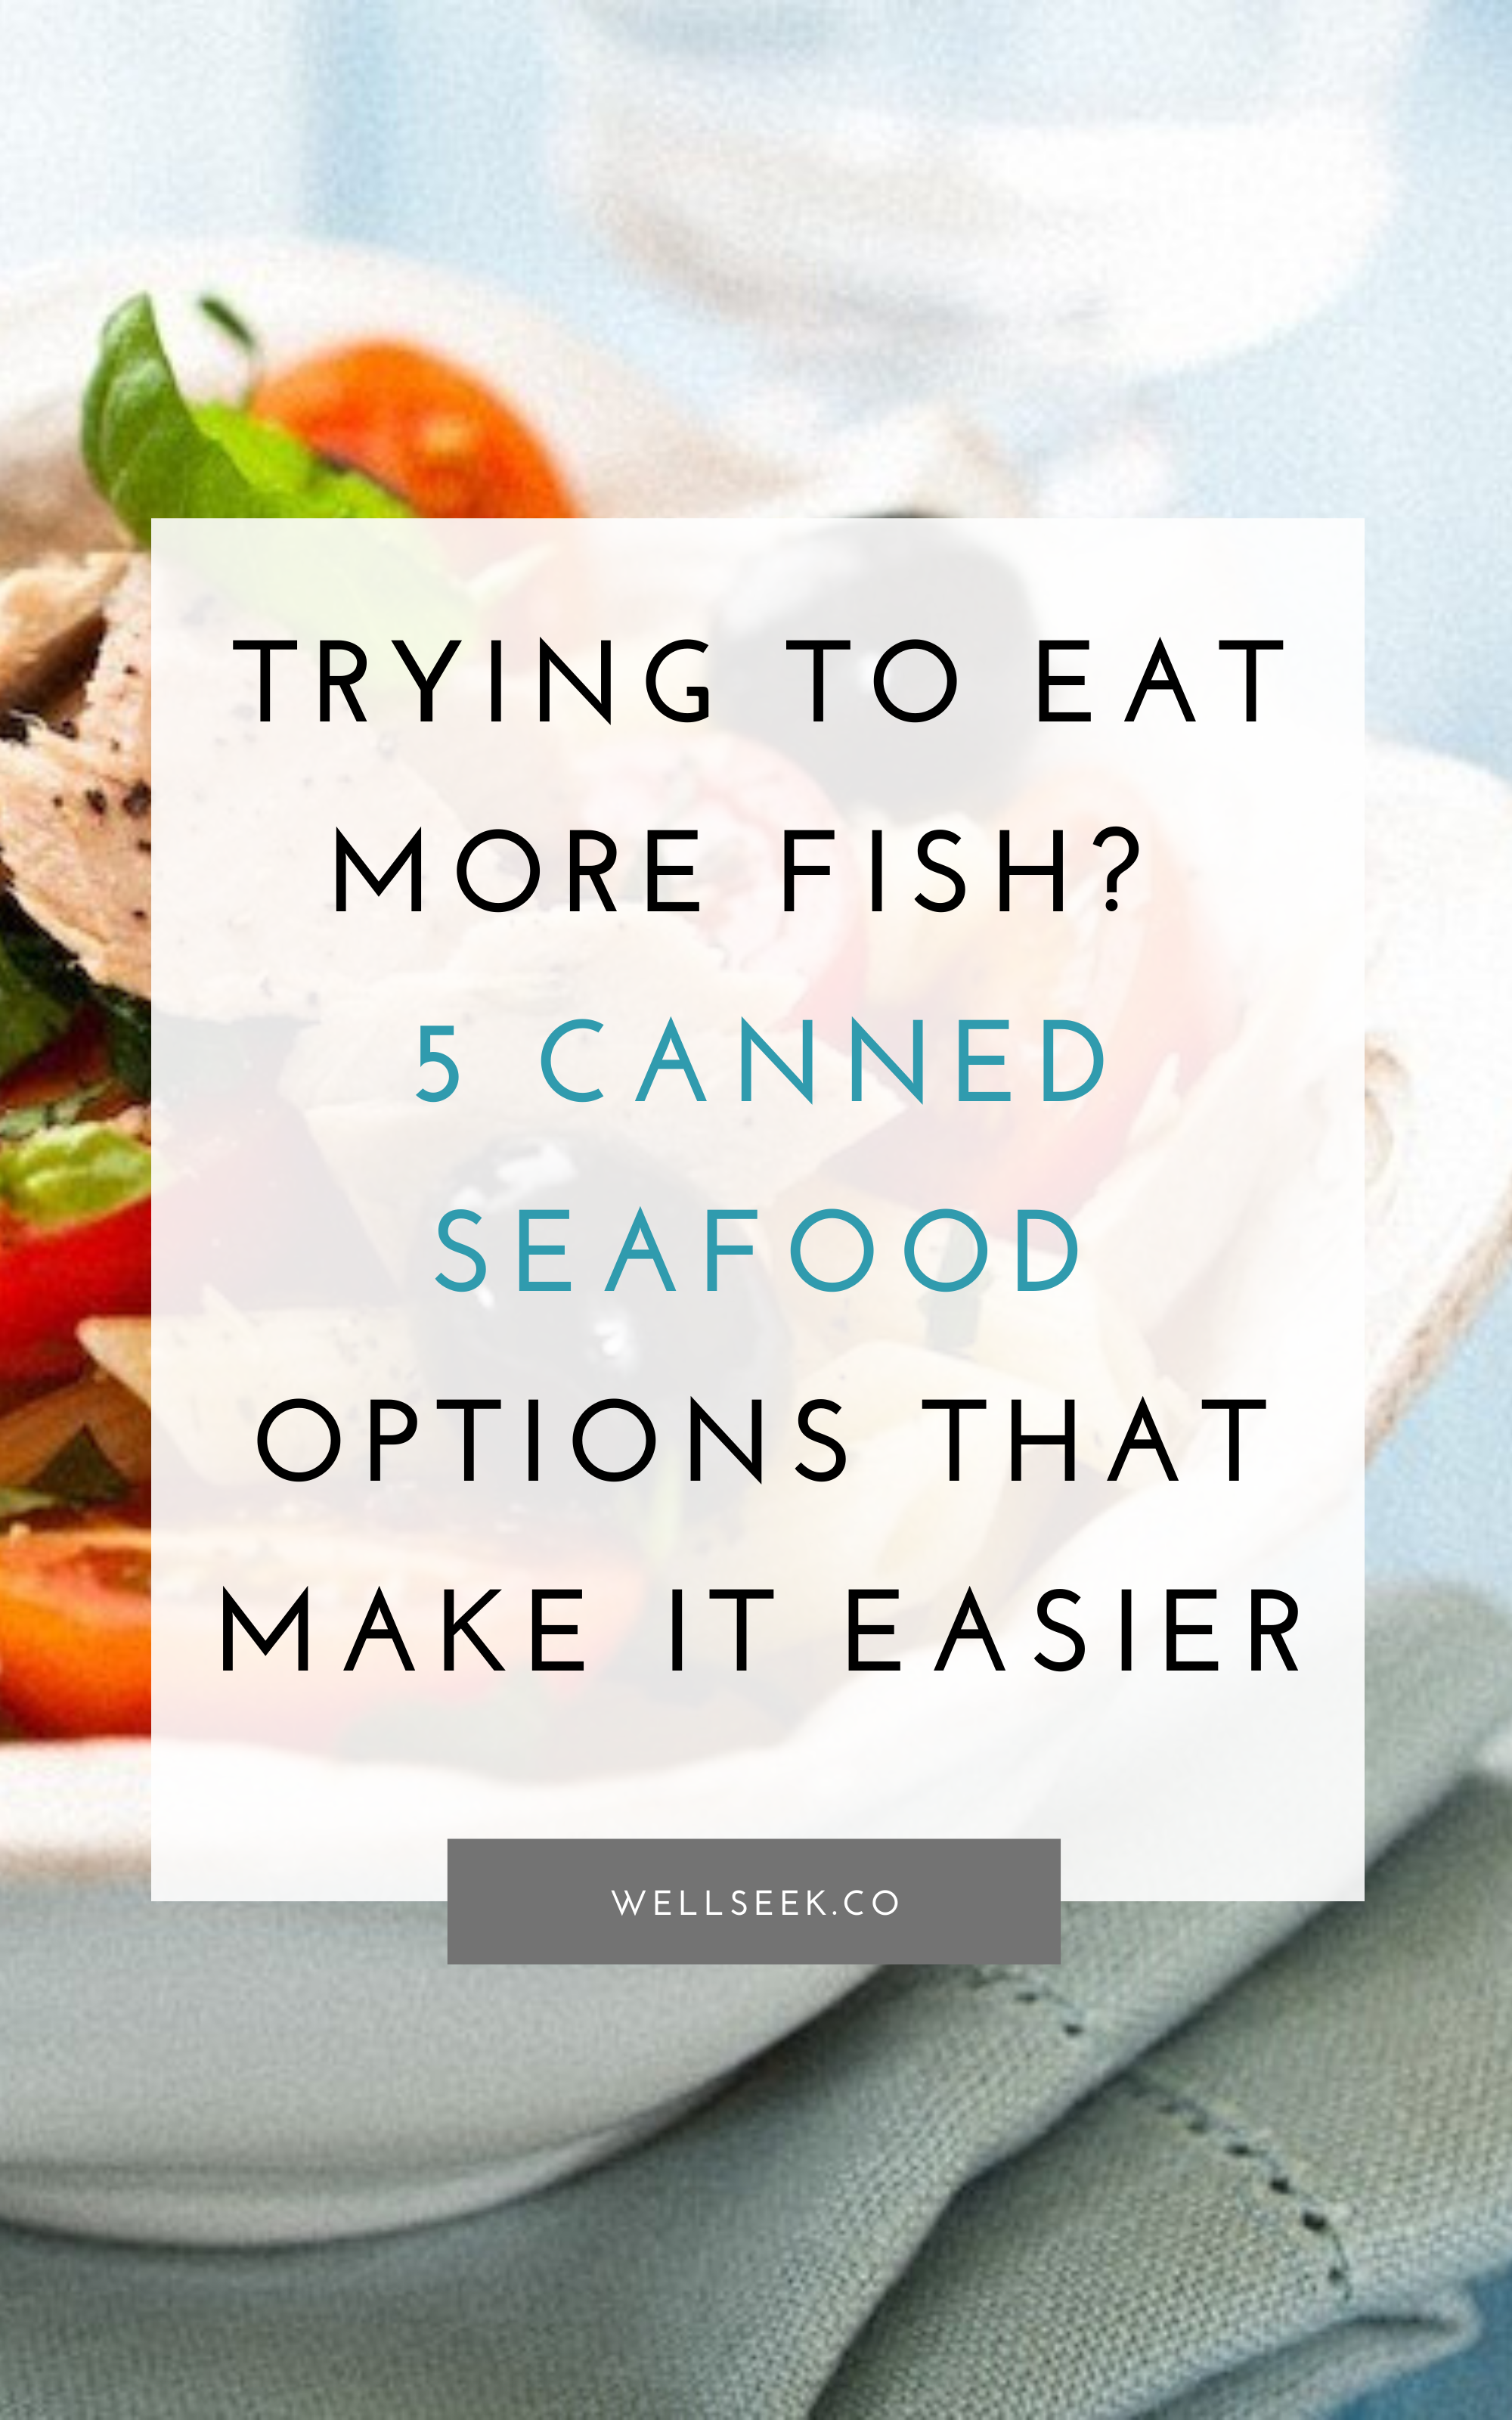 TRYING TO EAT MORE FISH? 5 CANNED SEAFOOD OPTIONS THAT ...